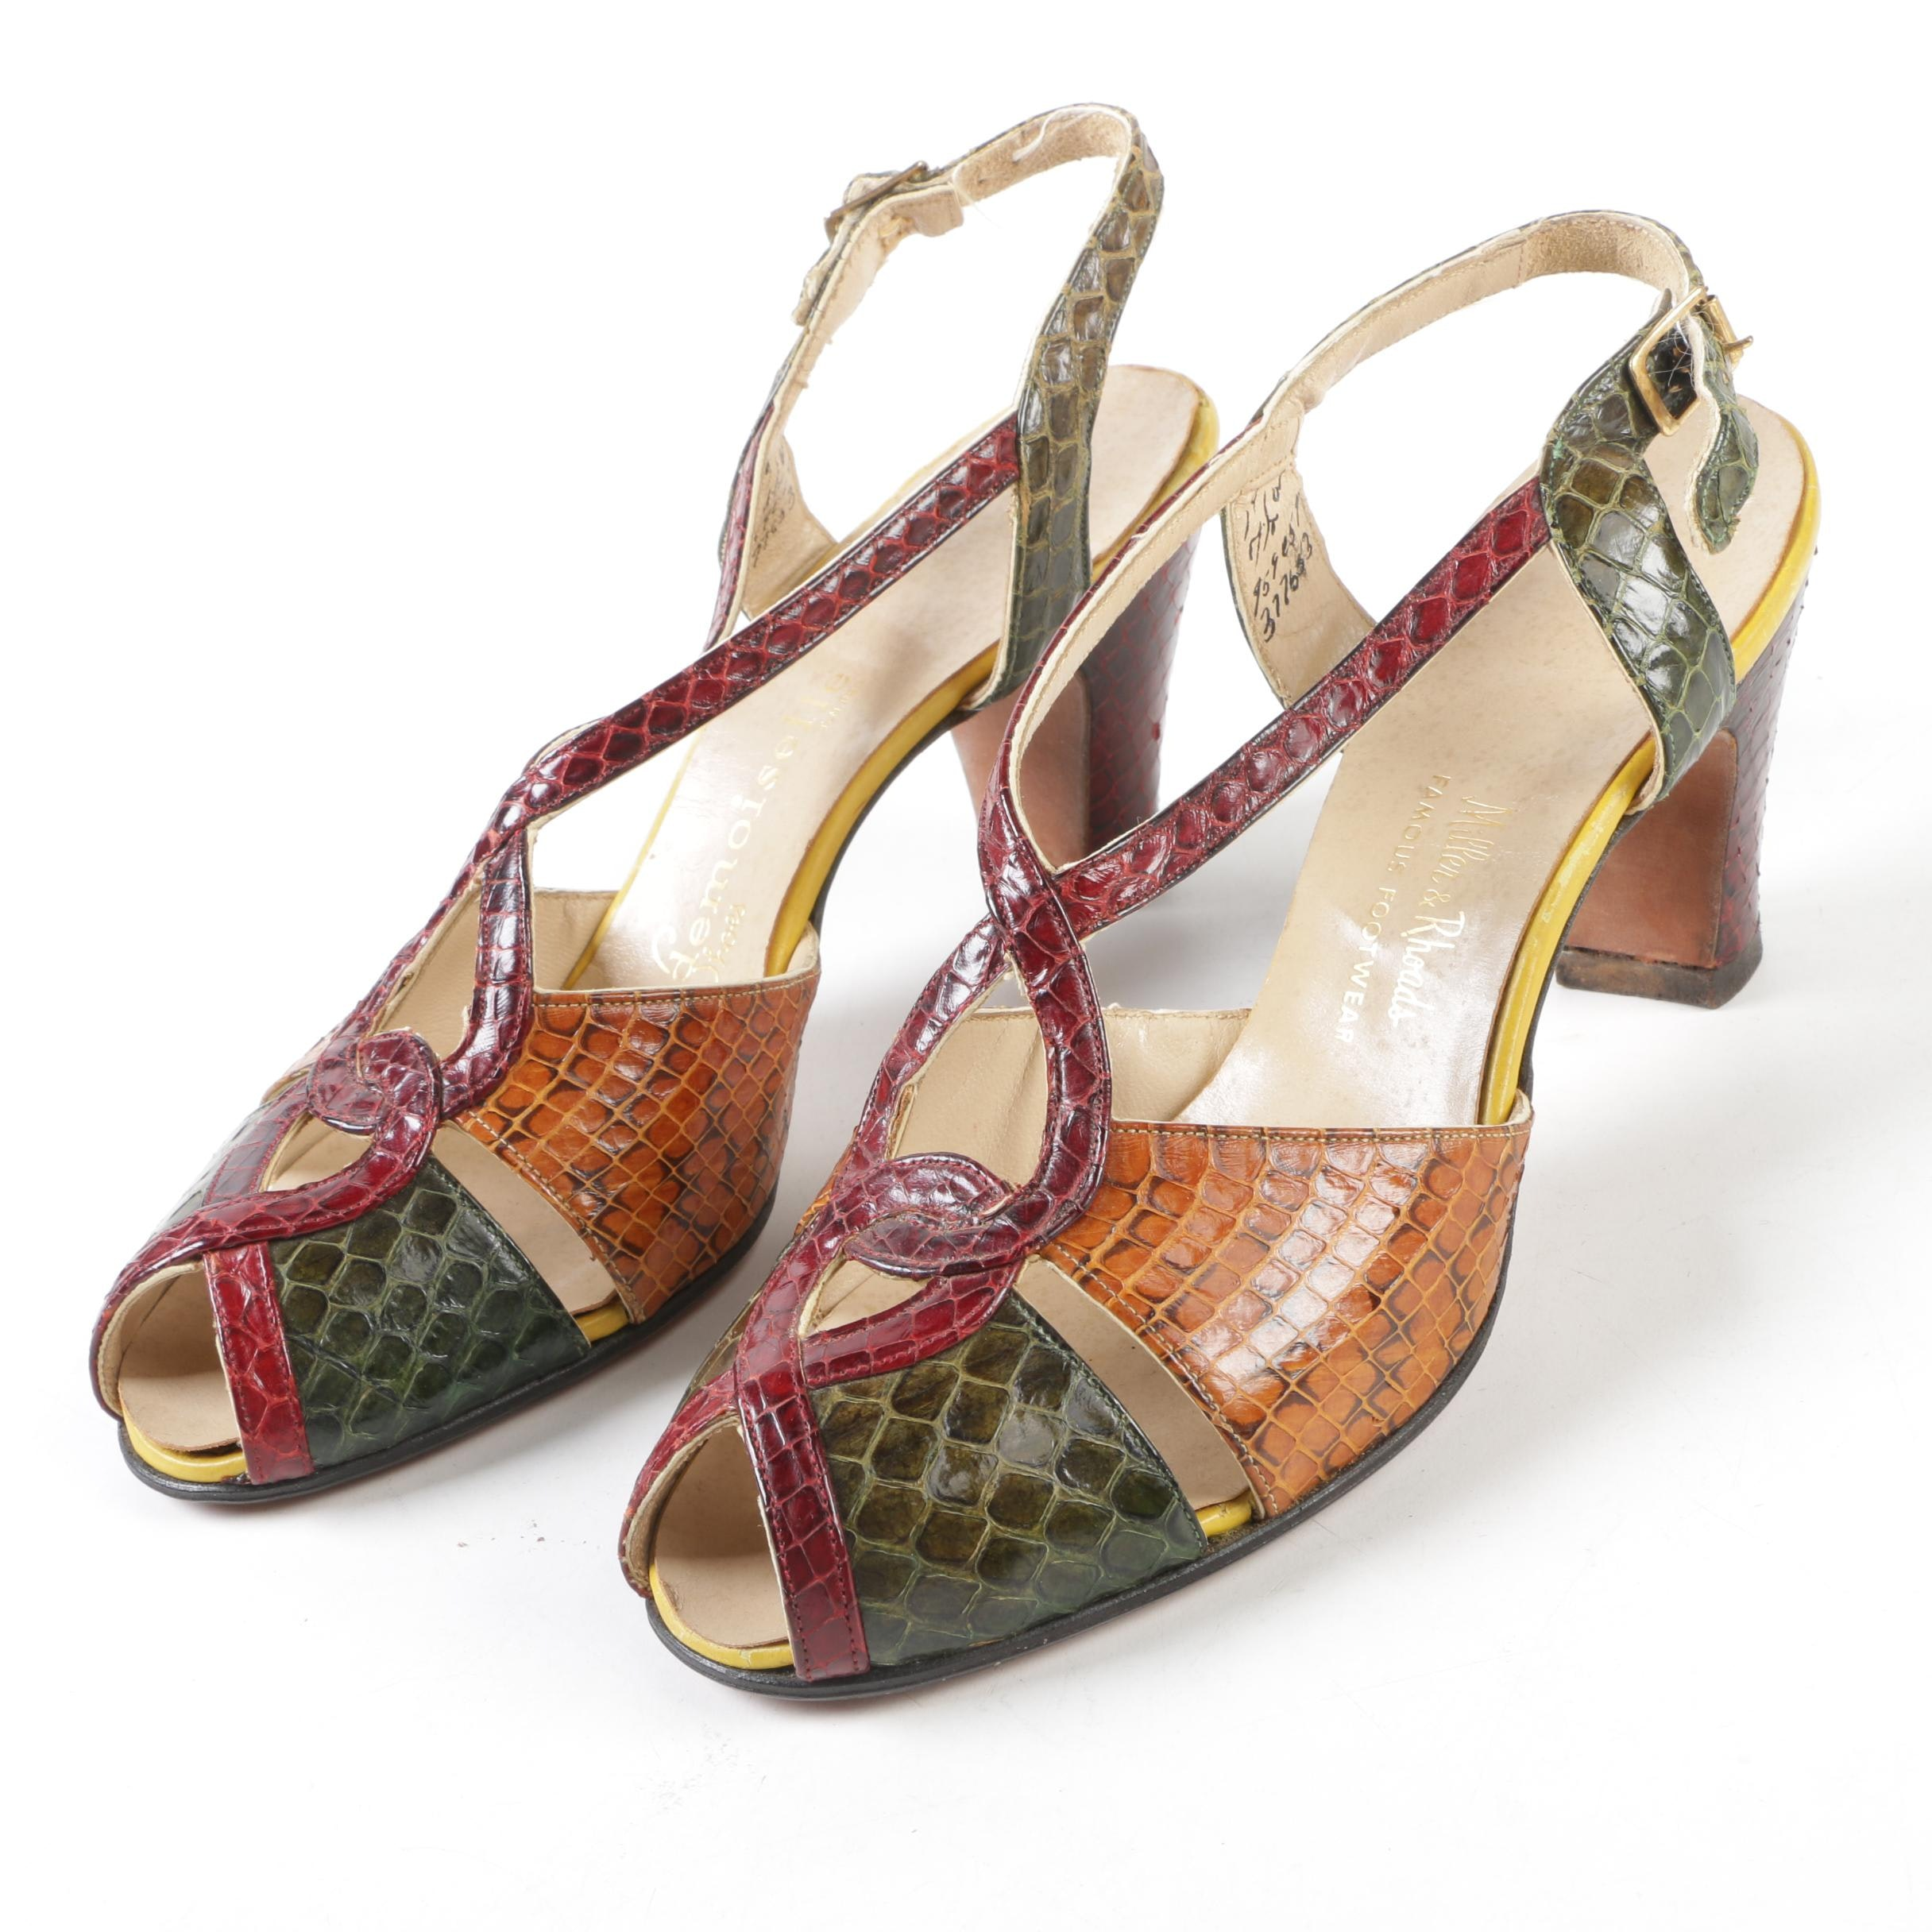 Mademoiselle Shoes Snakeskin Open Toe Strappy Sandals, Vintage